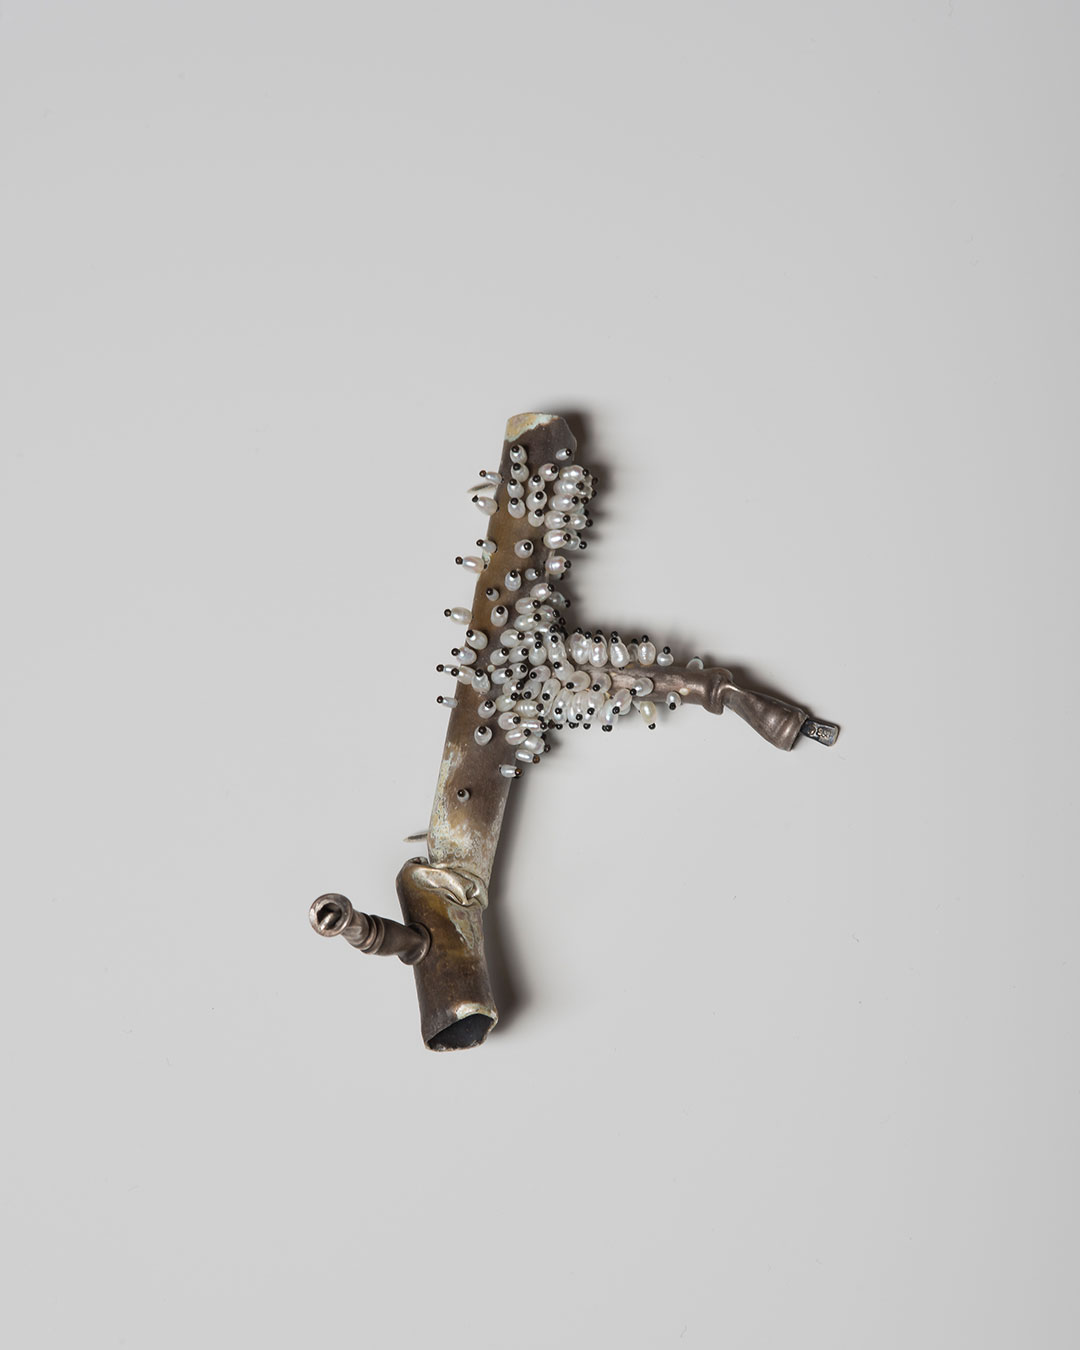 Sam Tho Duong, A&T, 2019, brooch; silver, freshwater pearls, nylon, €1260